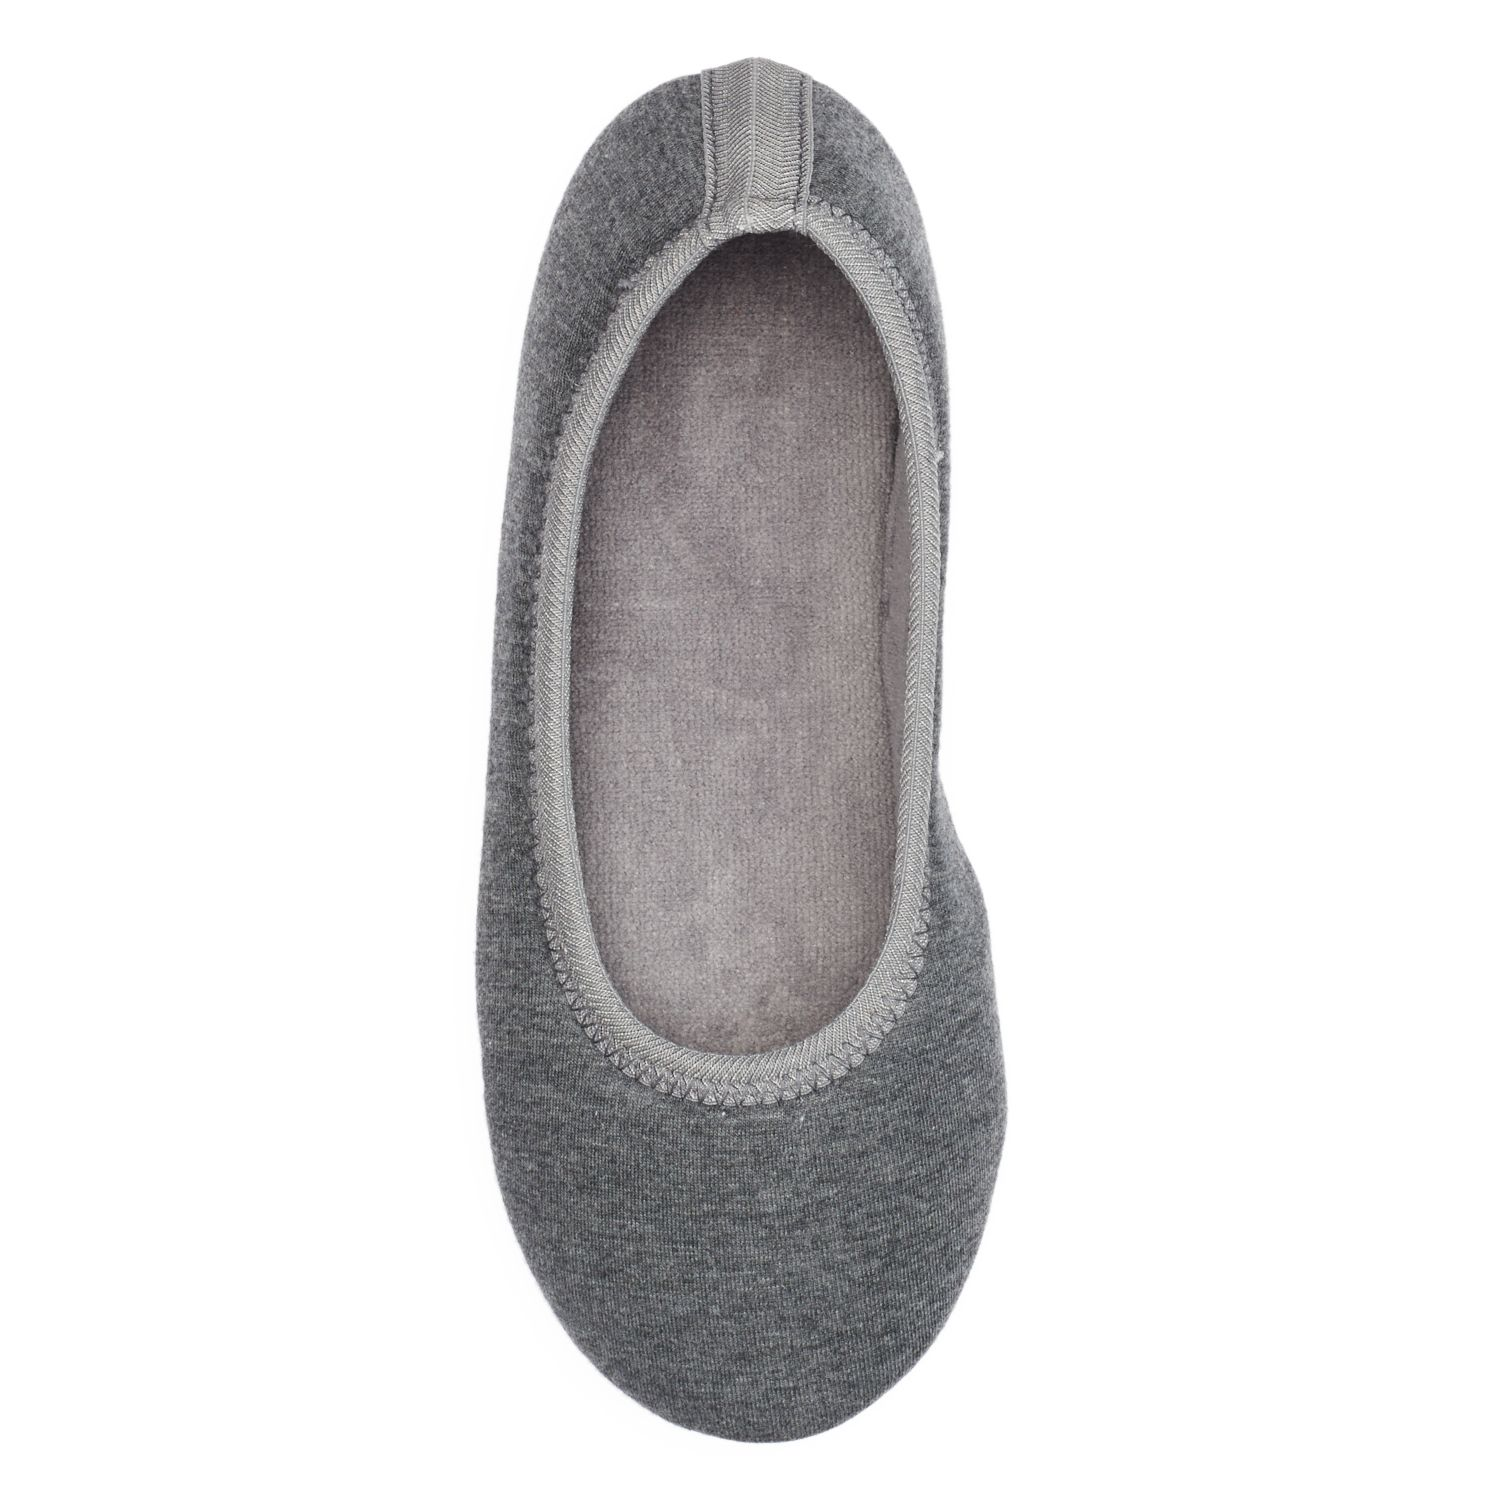 c26cba87541005 Womens Isotoner Ballet Slippers - Shoes